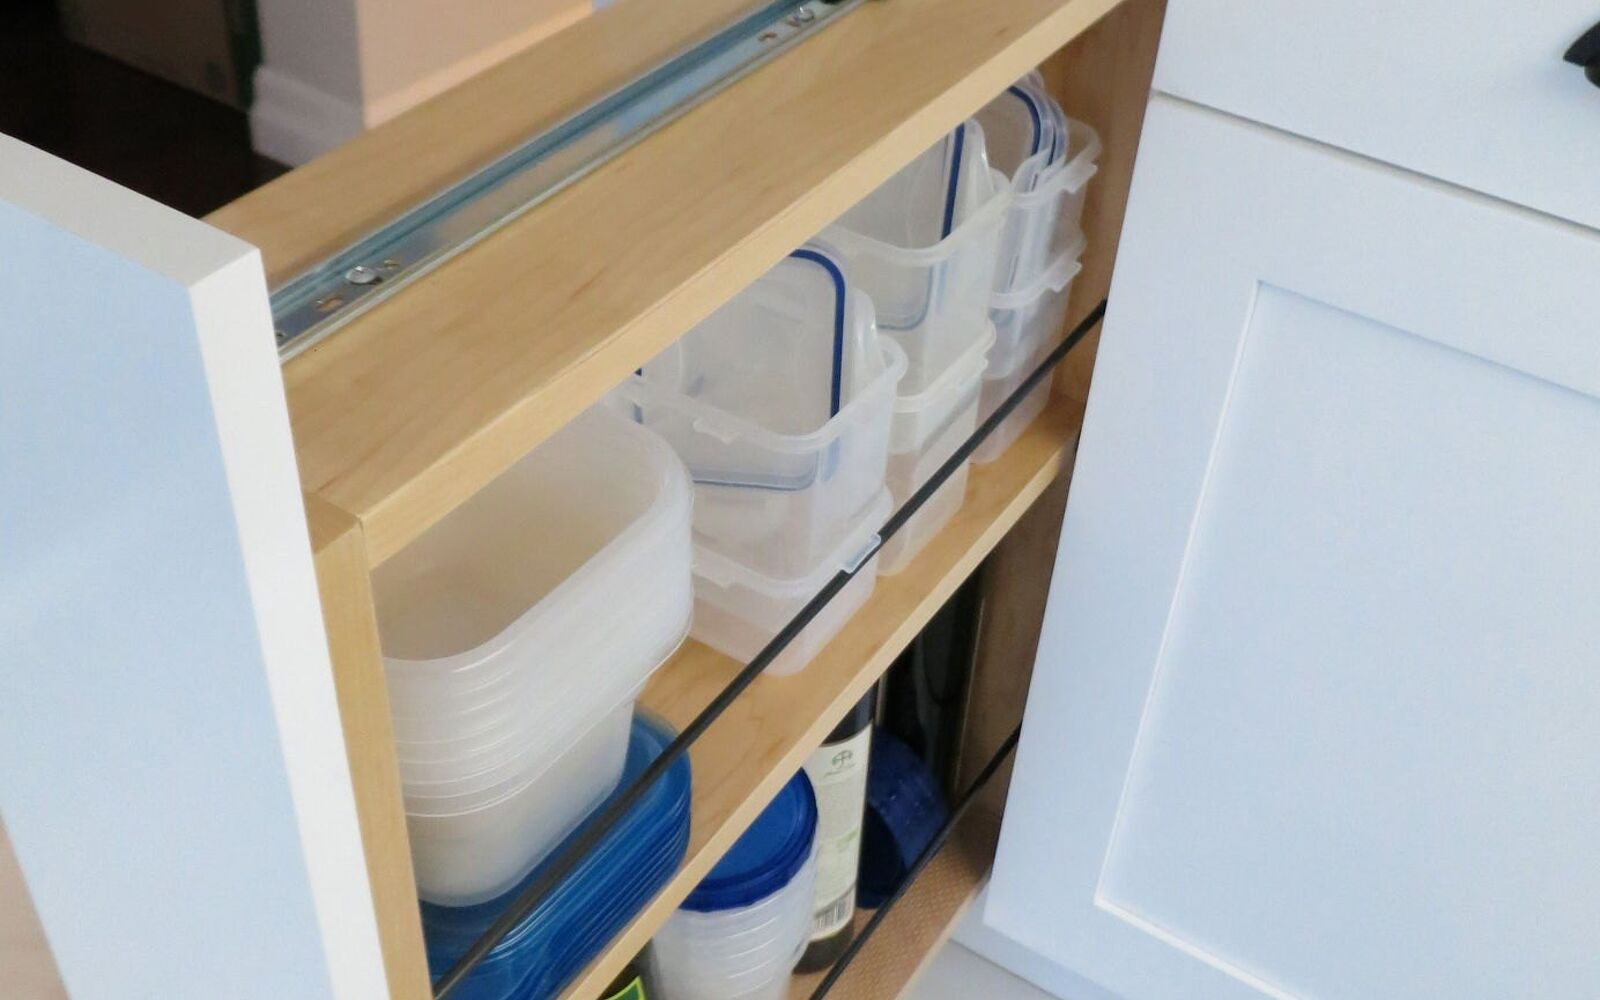 s 31 storage hacks that will instantly declutter your kitchen, Turn a filler panel into a pull out cabinet